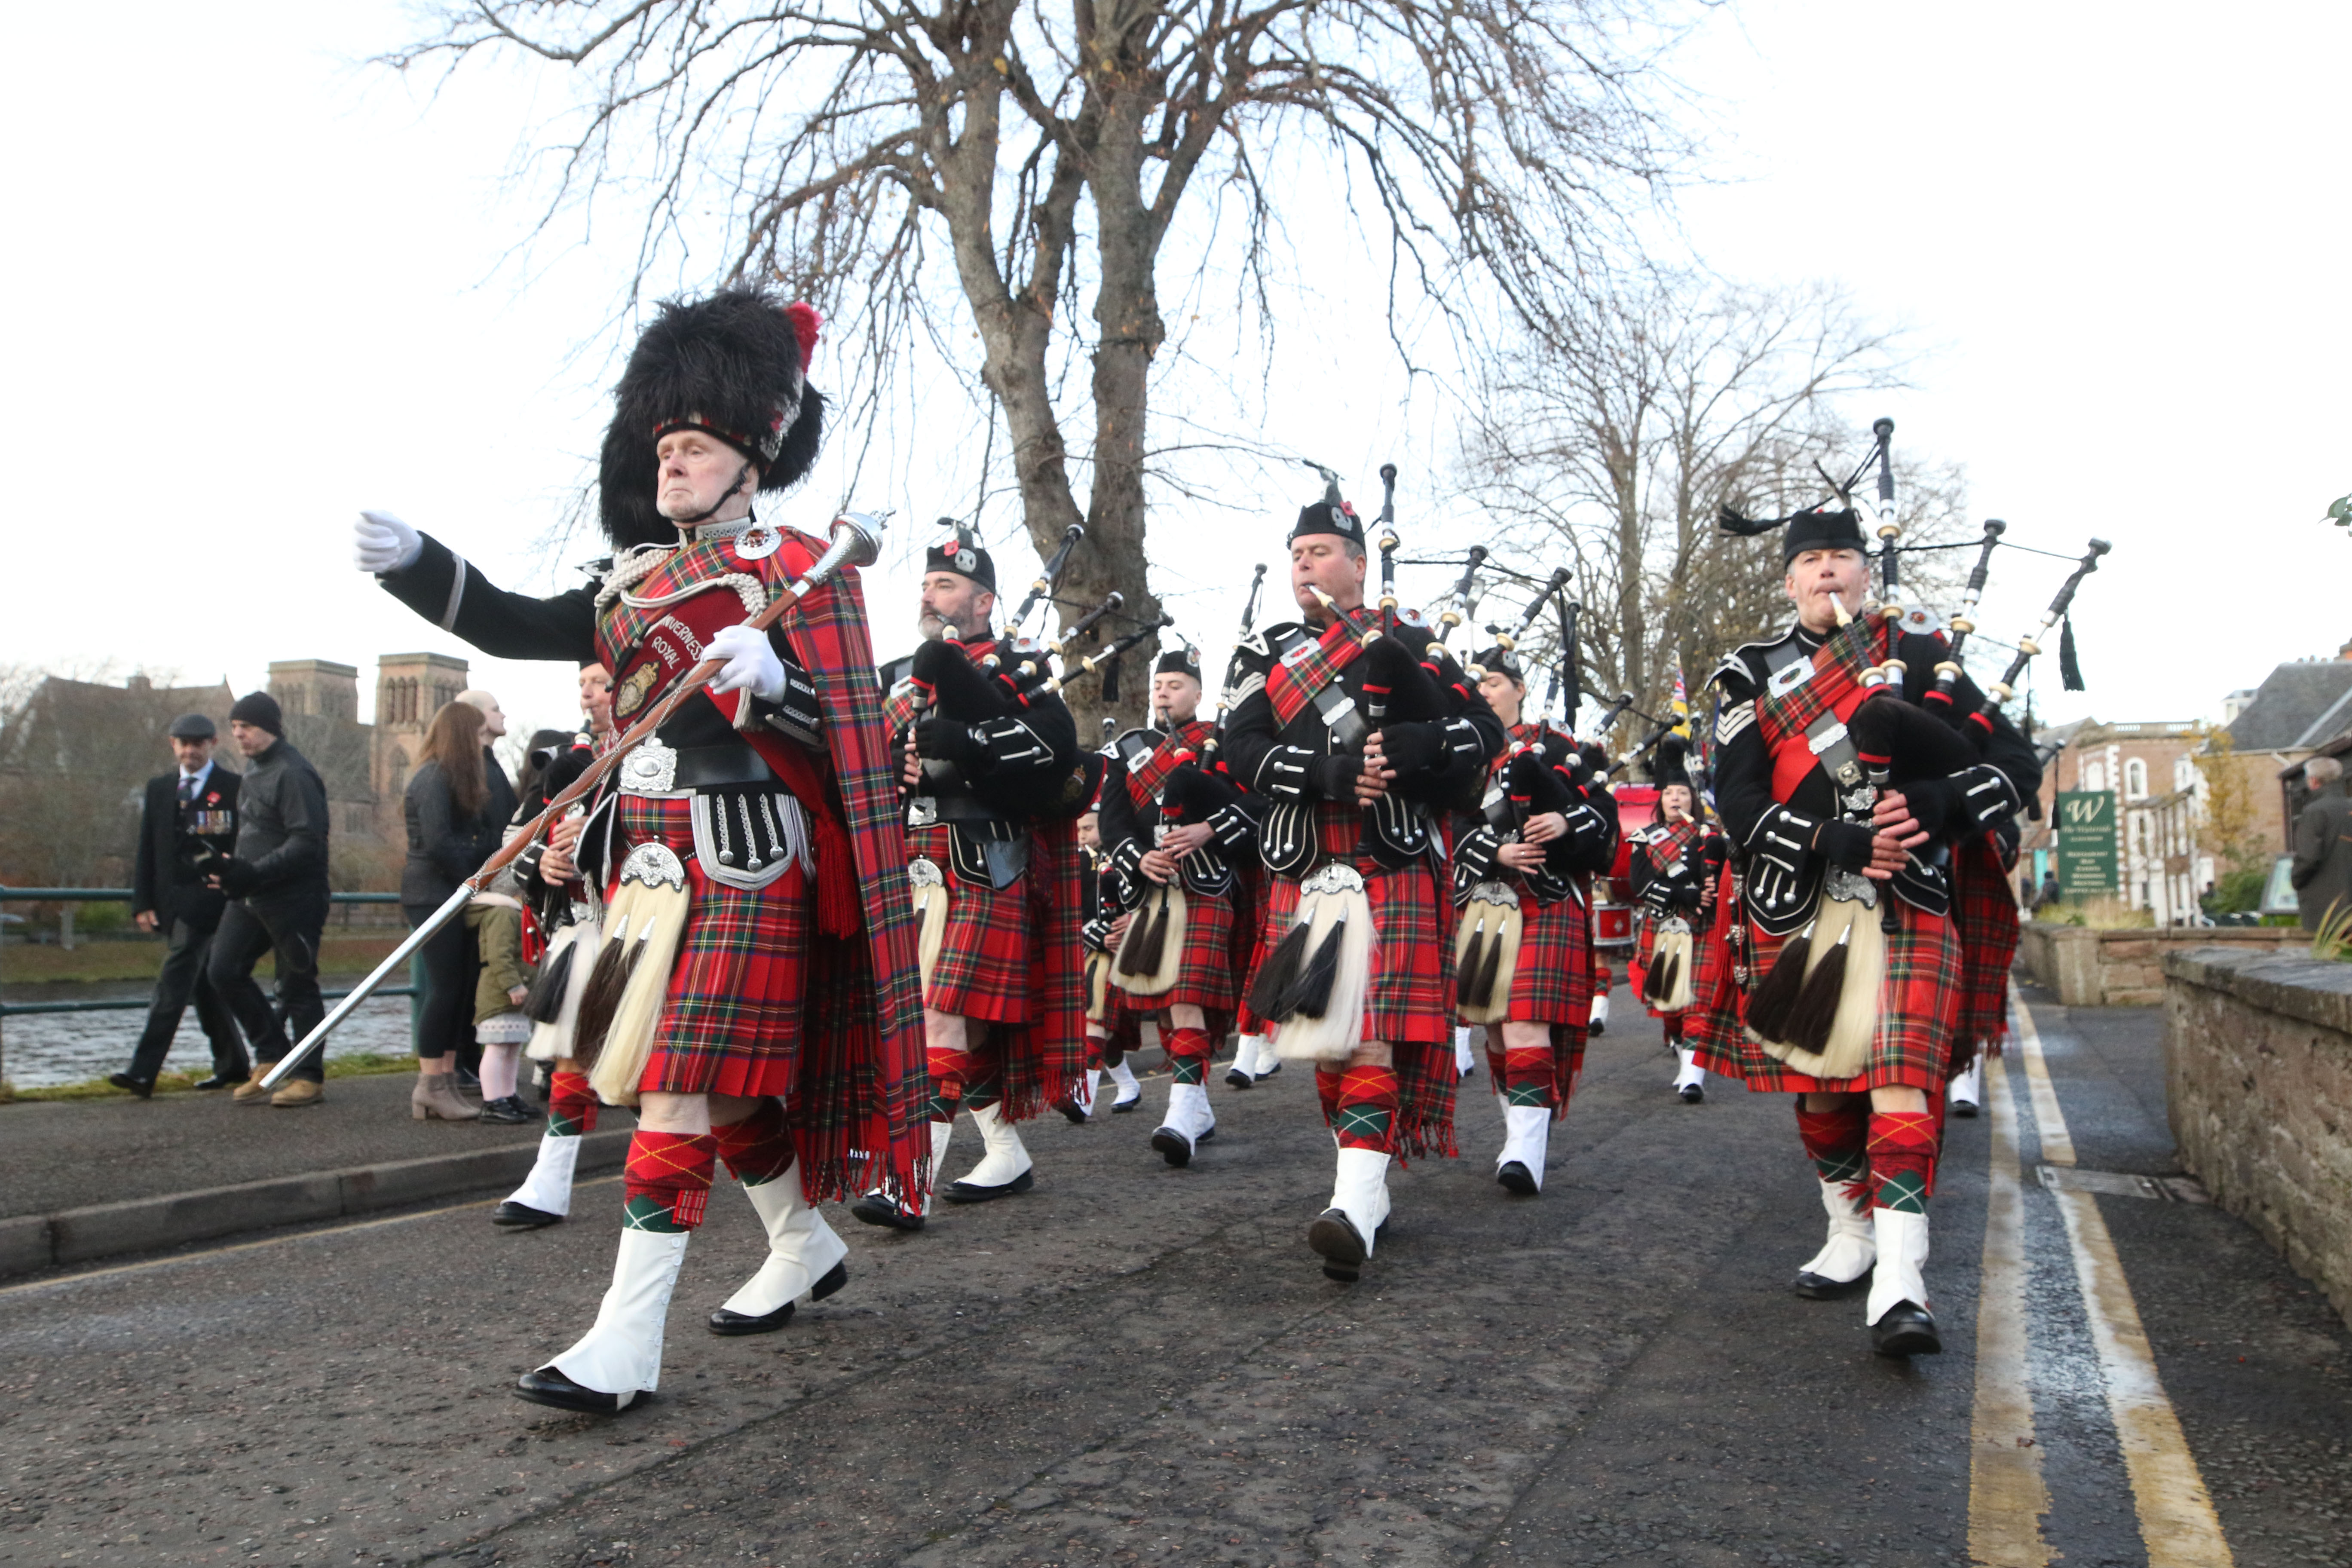 Royal British Legion pipe band led the Remembrance Sunday parade in Inverness